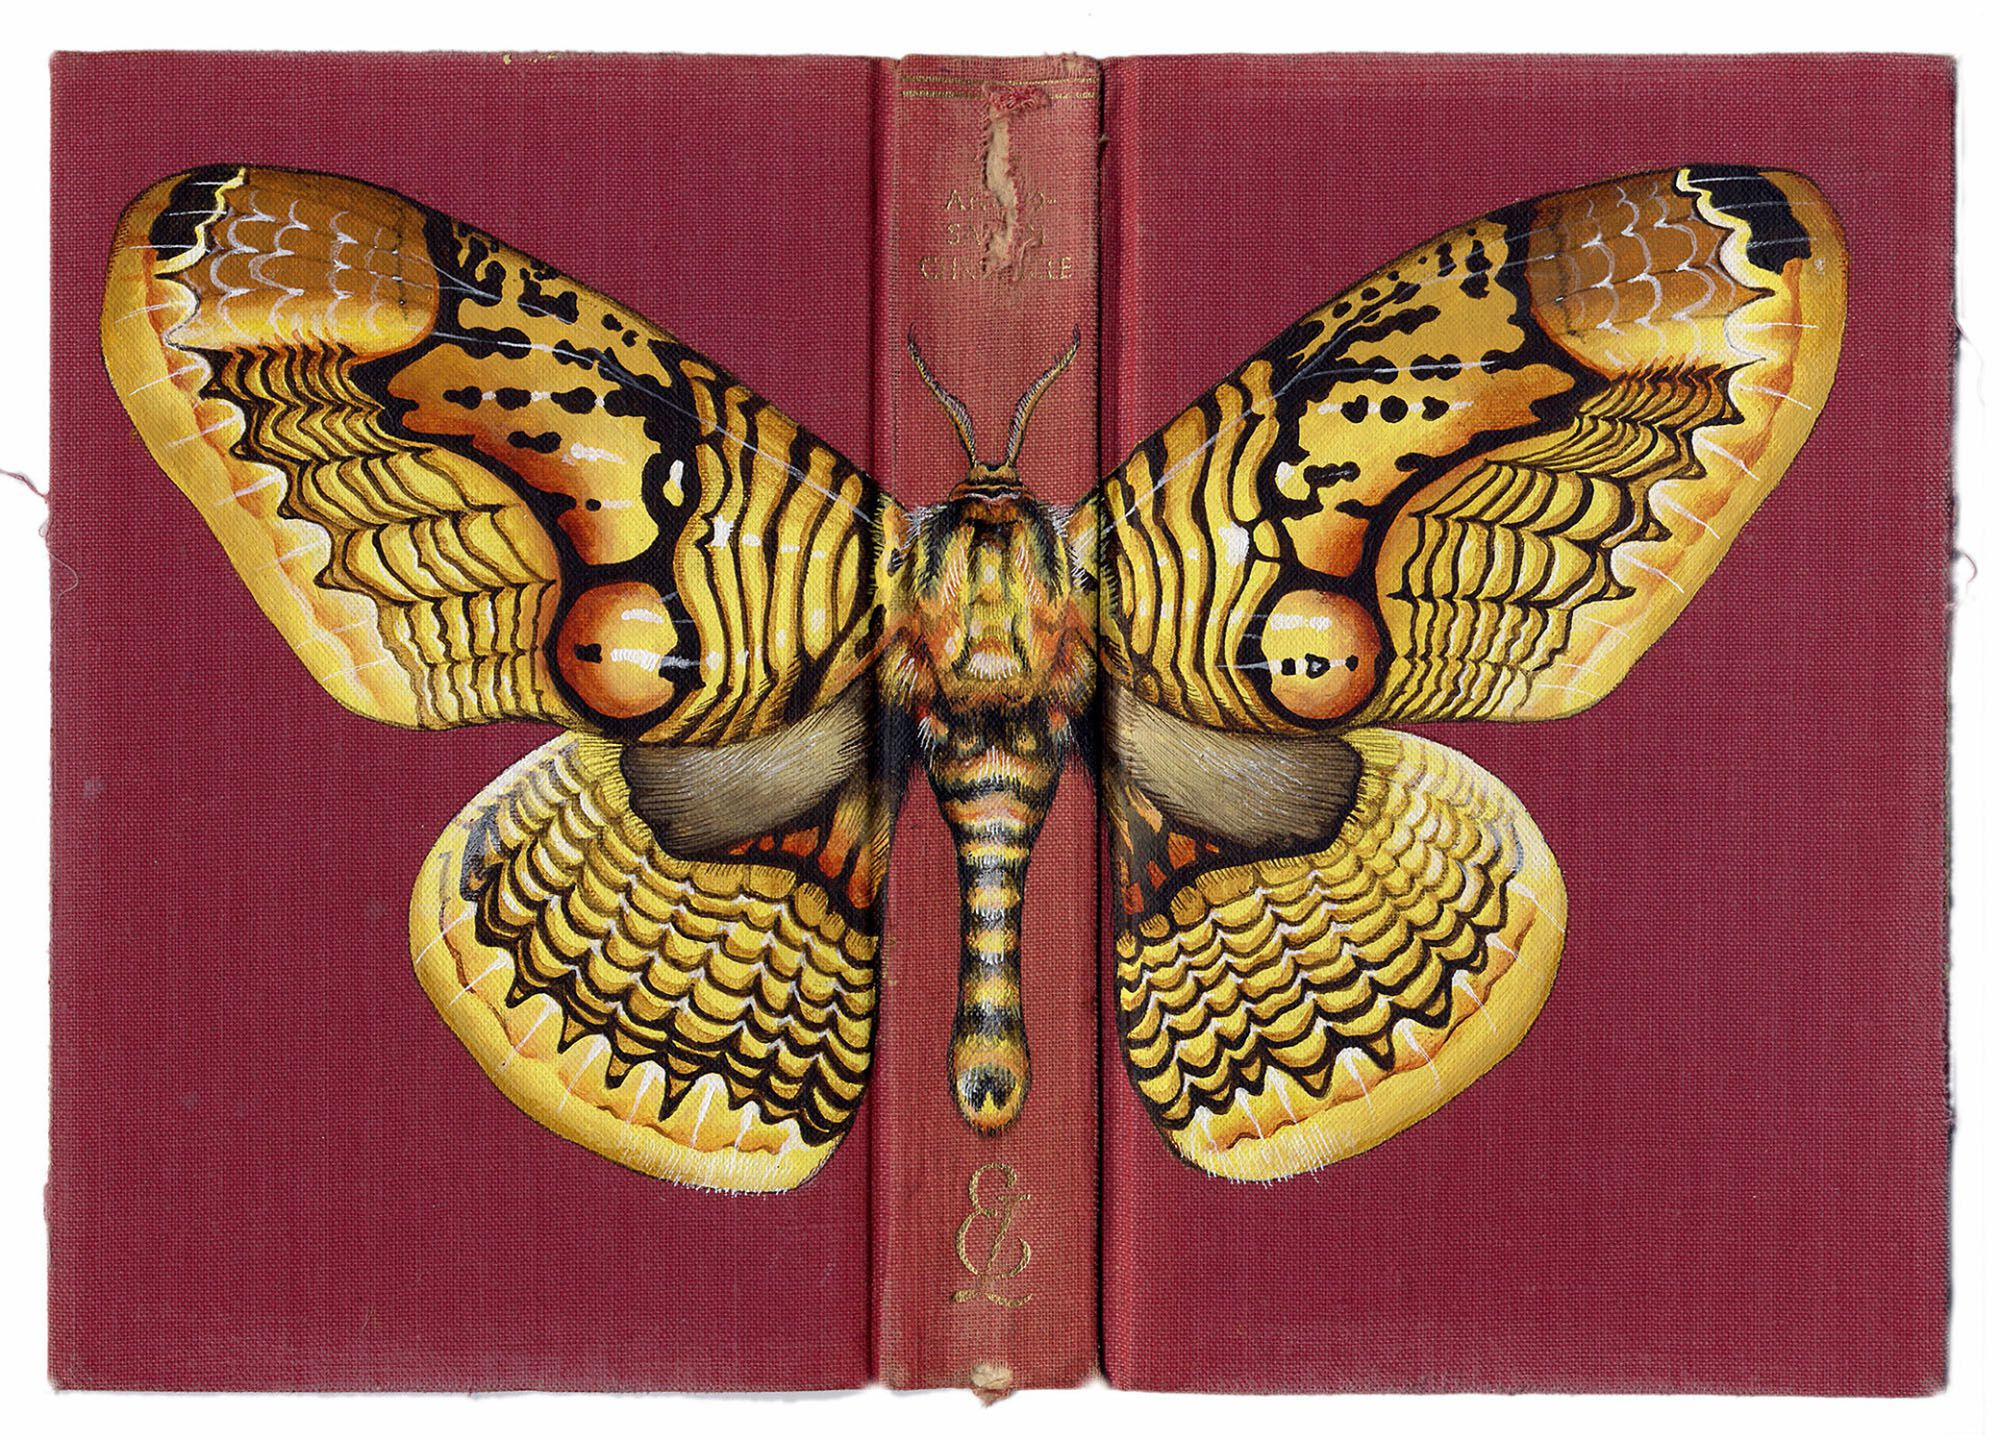 Artist's Insect Paintings on Recycled Book Covers Are Inspired by Love of Nature